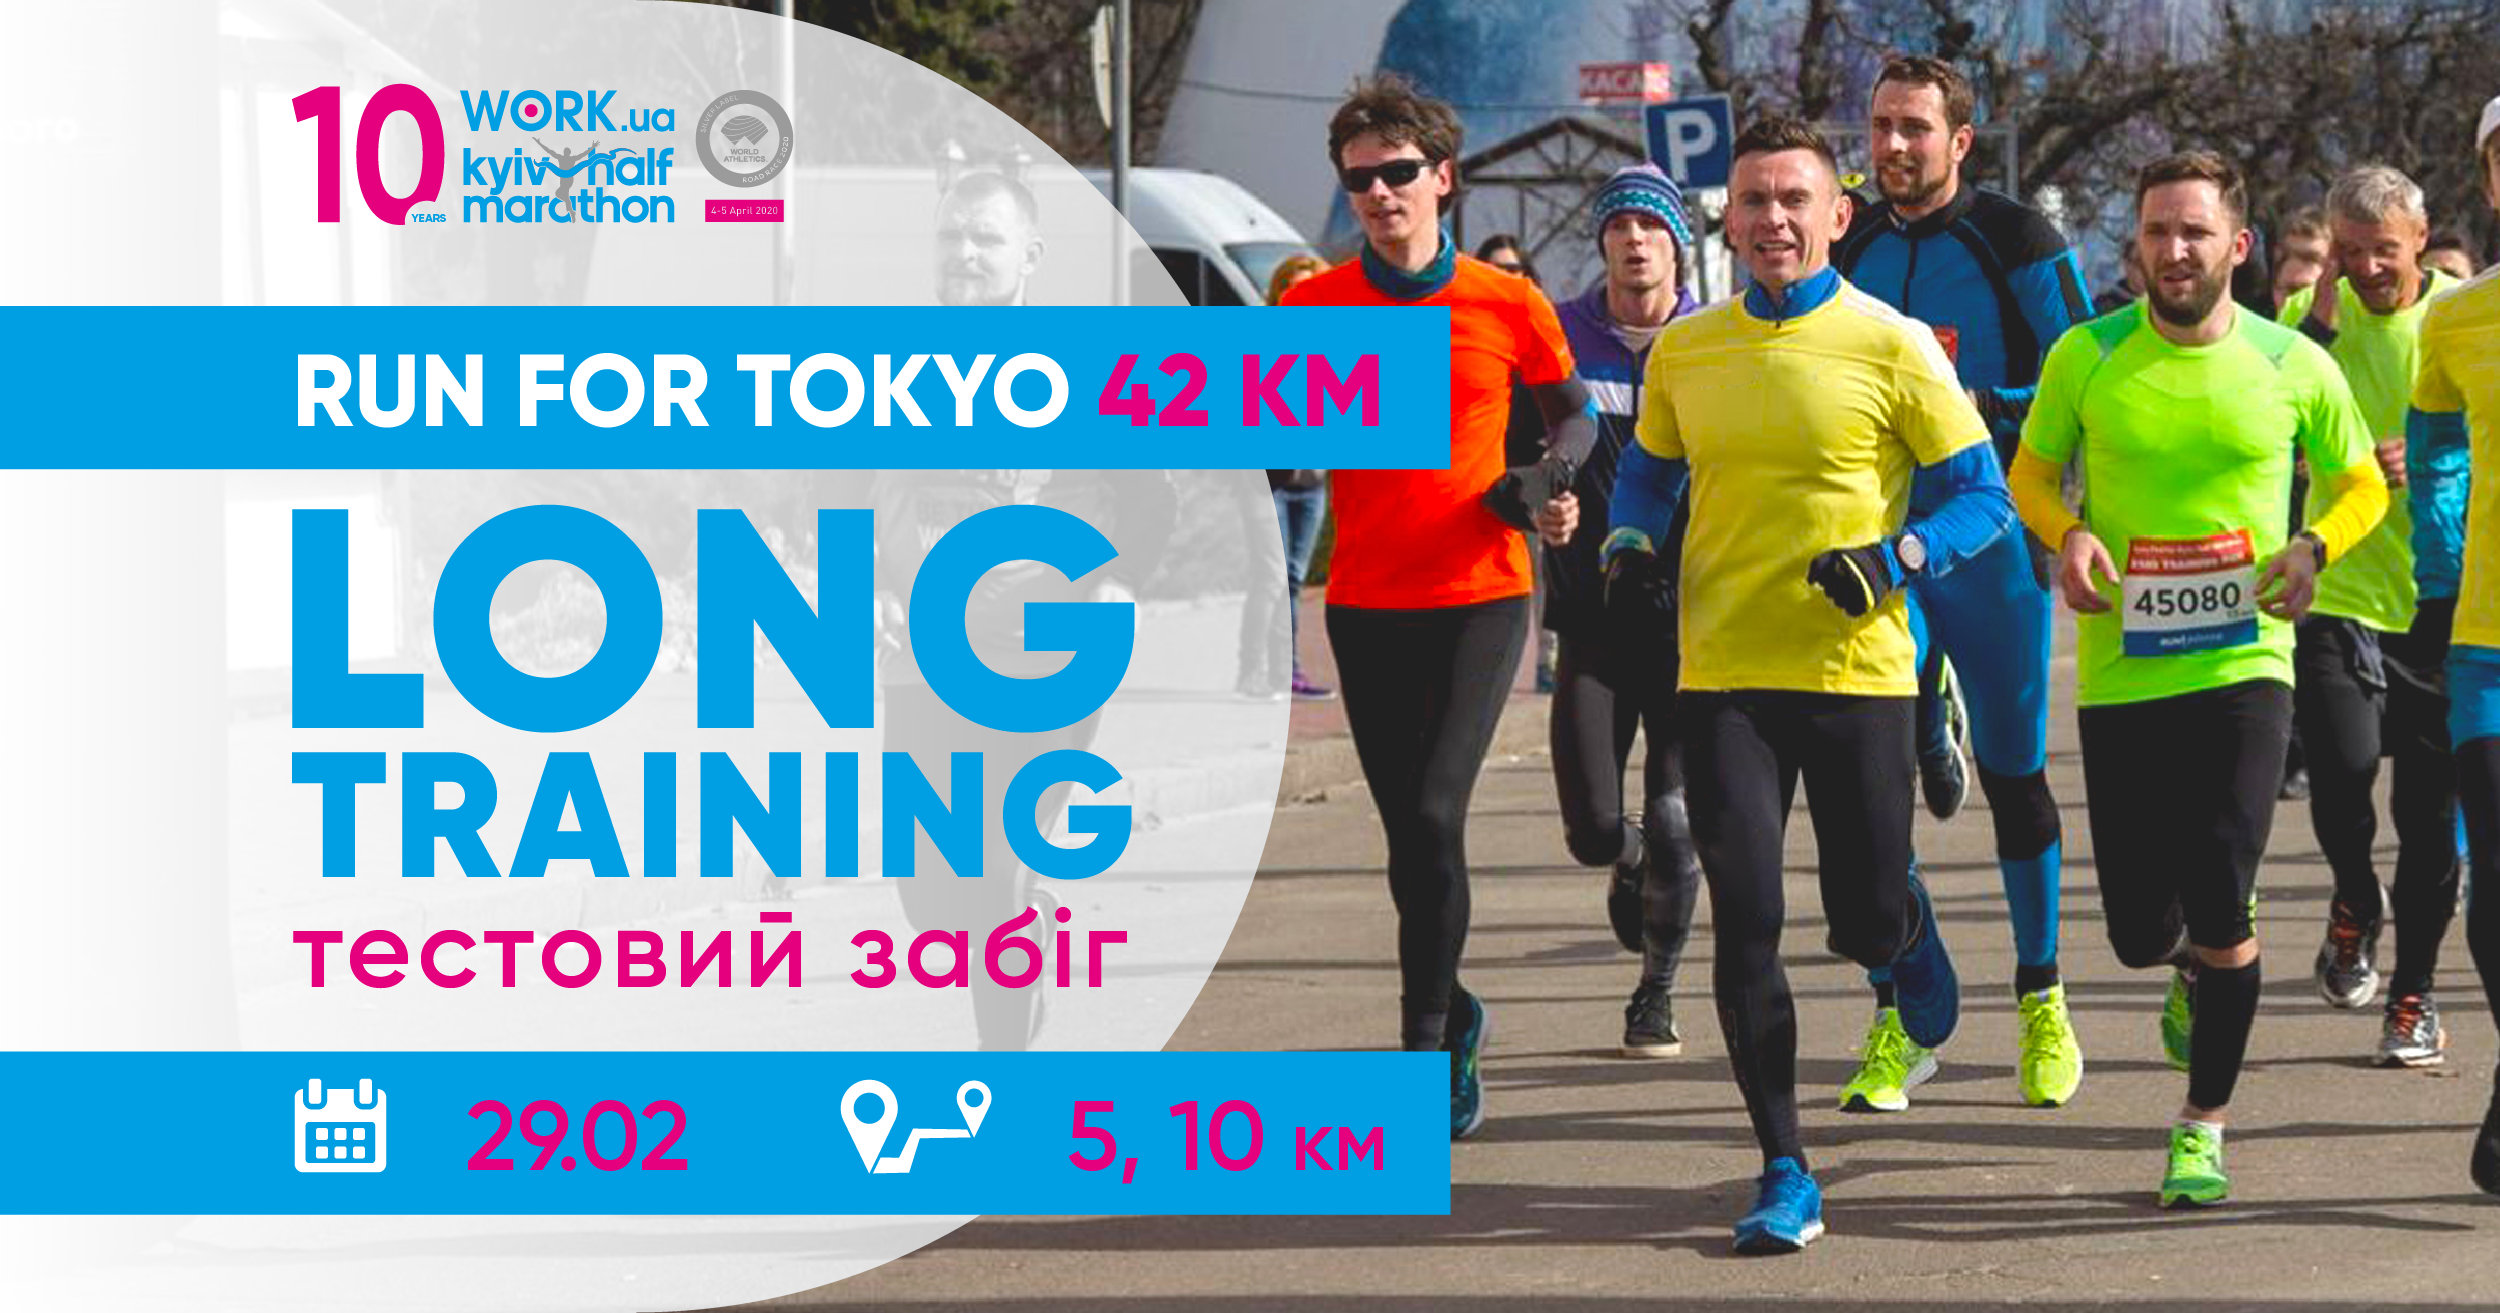 Забіг Run for Tokyo Long Training 5, 10, 42 km